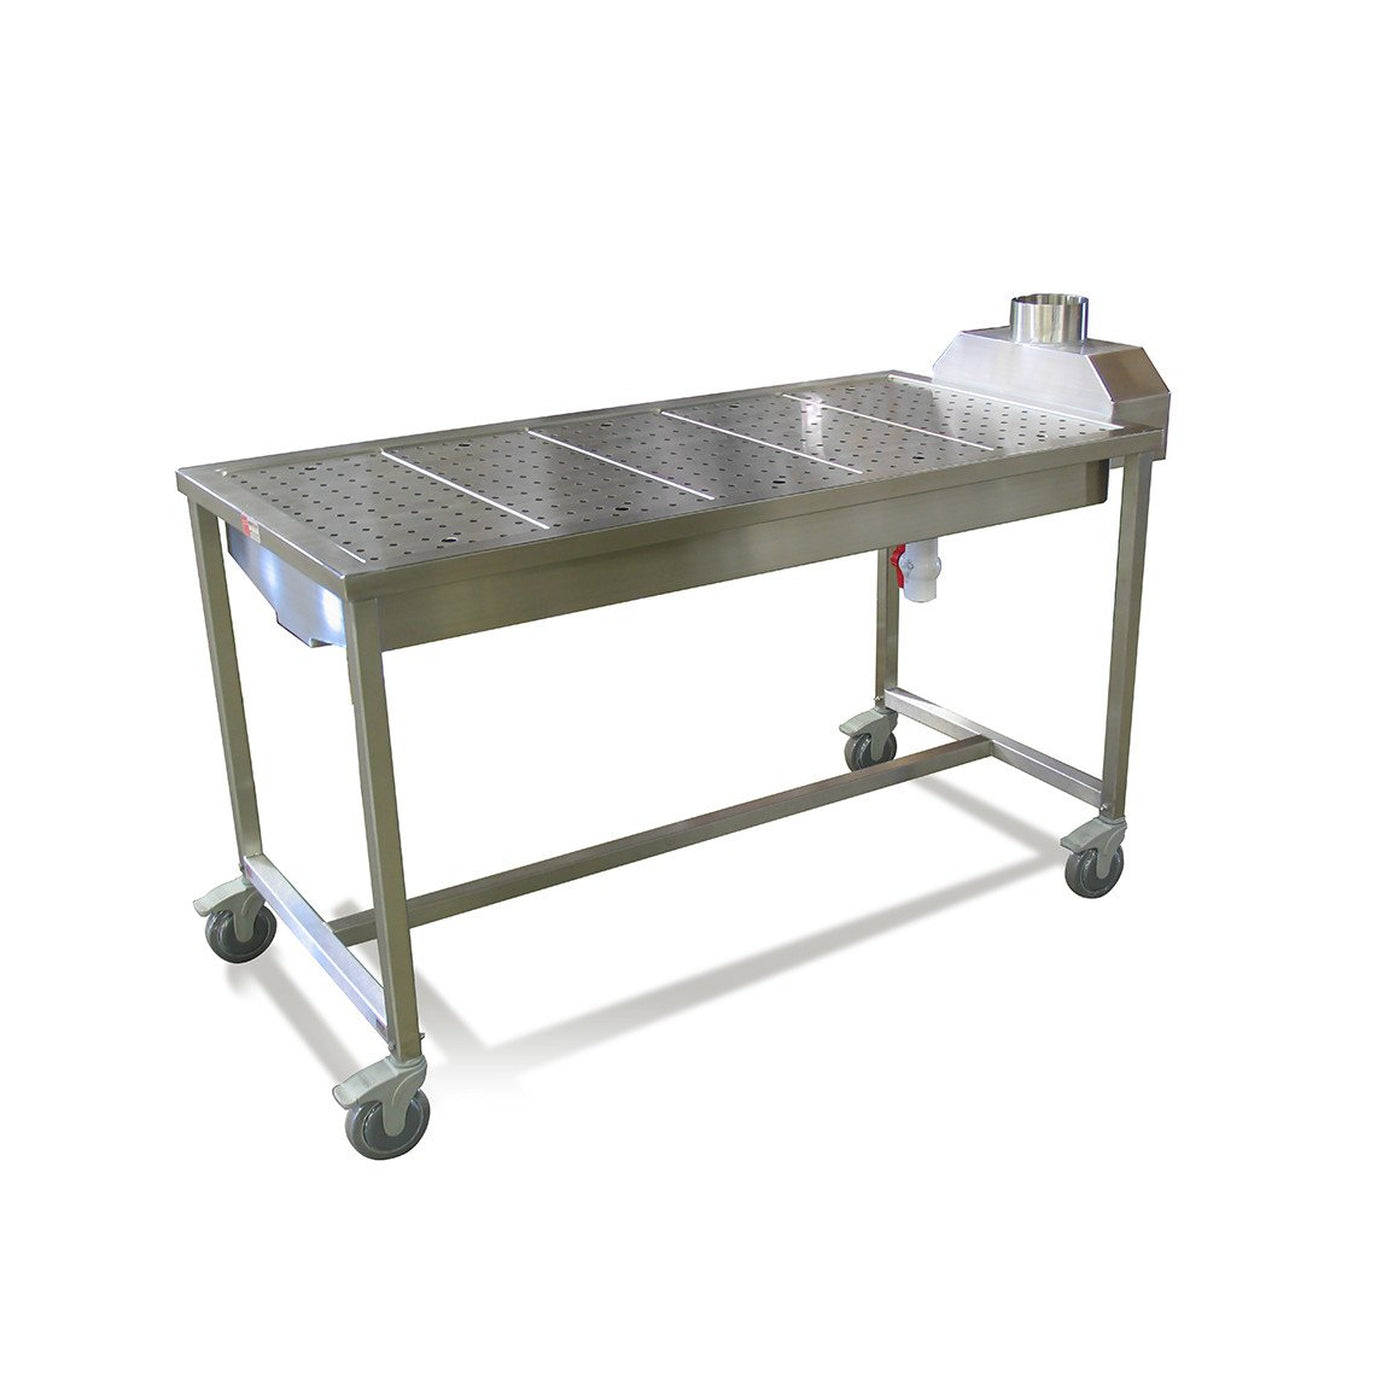 Mobile Downdraft Necropsy Table Mortech Manufacturing Company Inc - Stainless steel table accessories